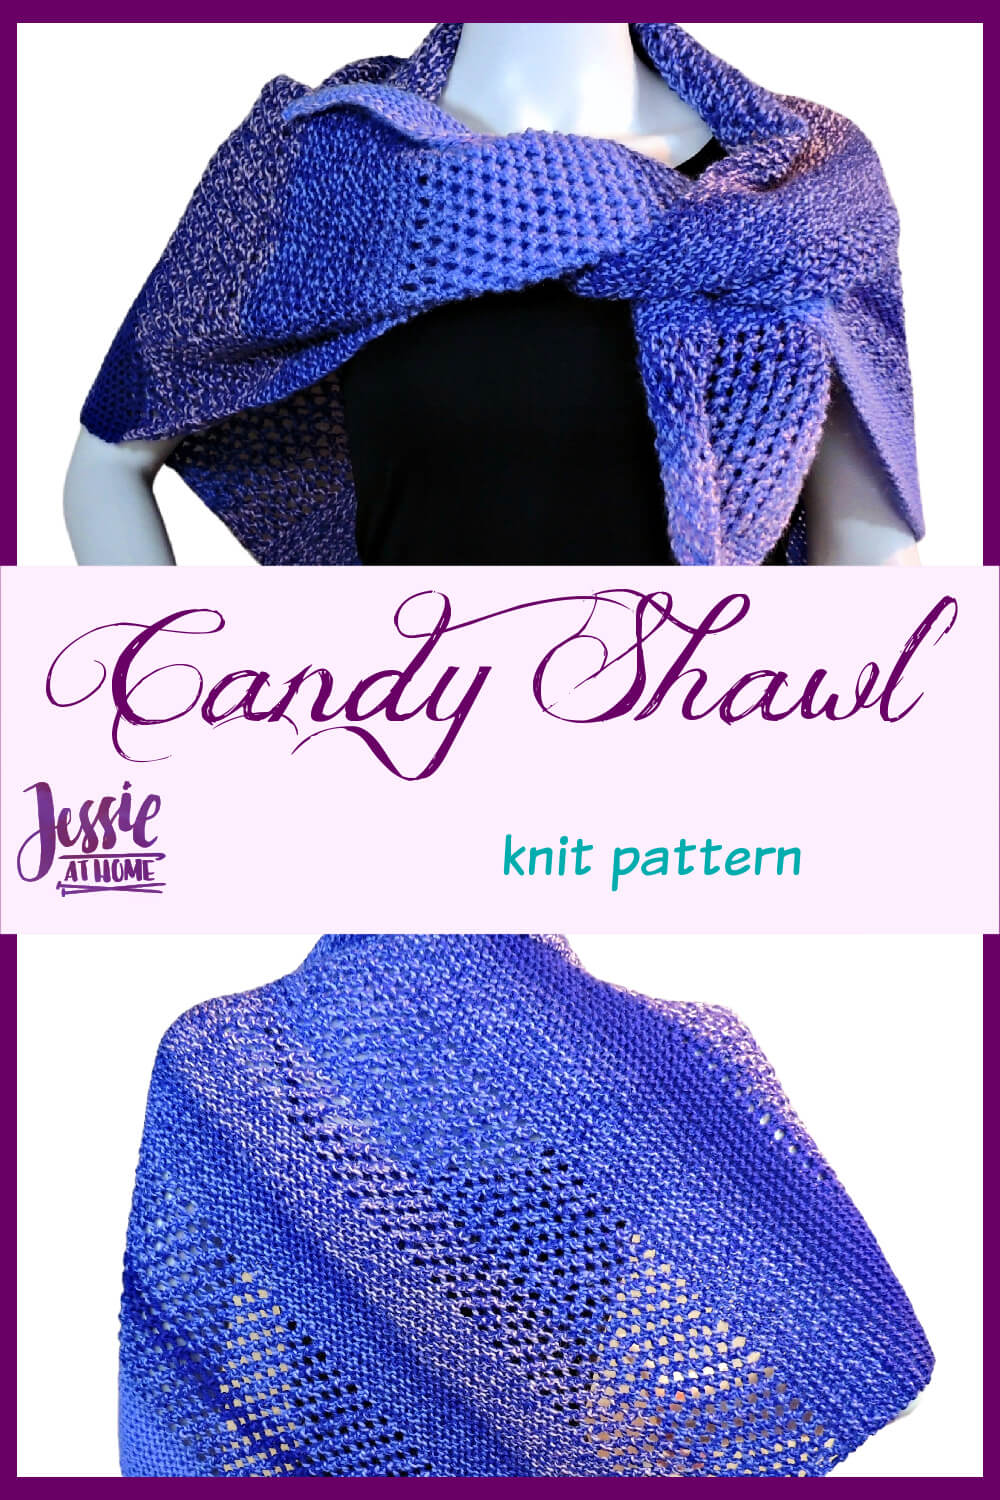 Candy Shawl - let the yarn do the color work